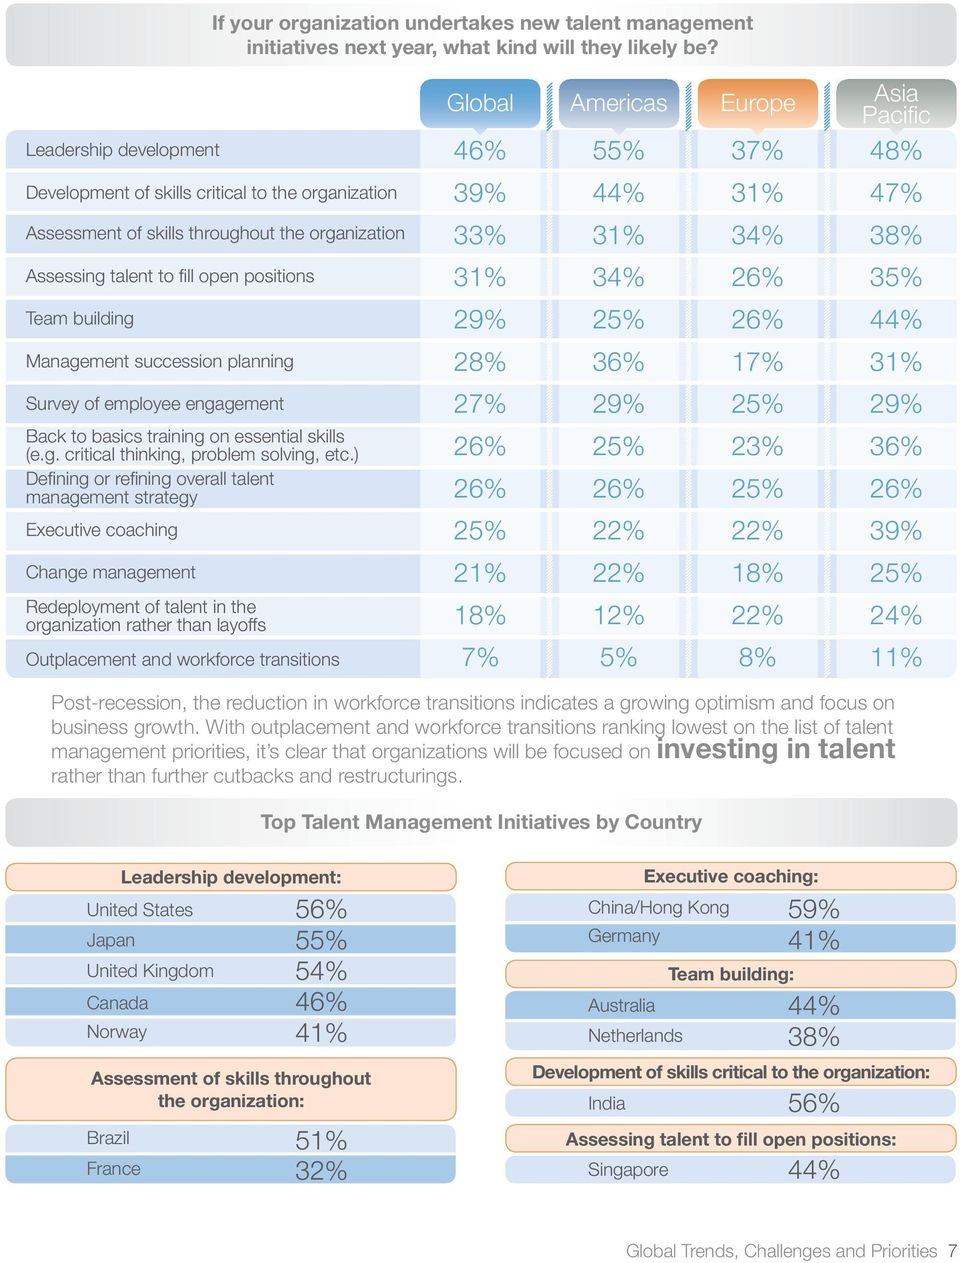 planning Survey of employee engagement Back to basics training on essential skills (e.g. critical thinking, problem solving, etc.